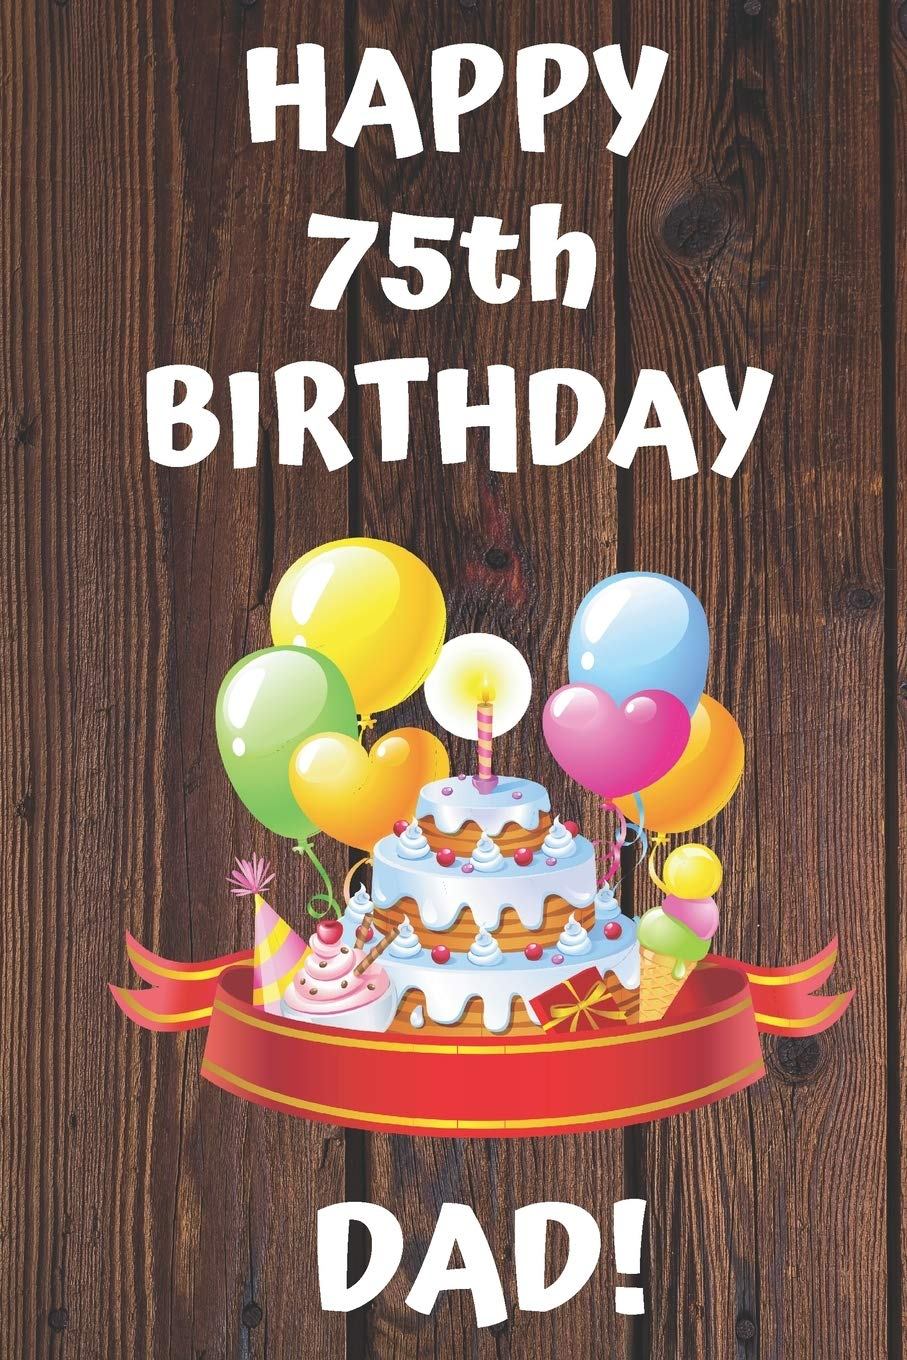 Dad 75th Birthday Card With Removable Laminate Buy Online In Andorra At Andorra Desertcart Com Productid 55284109